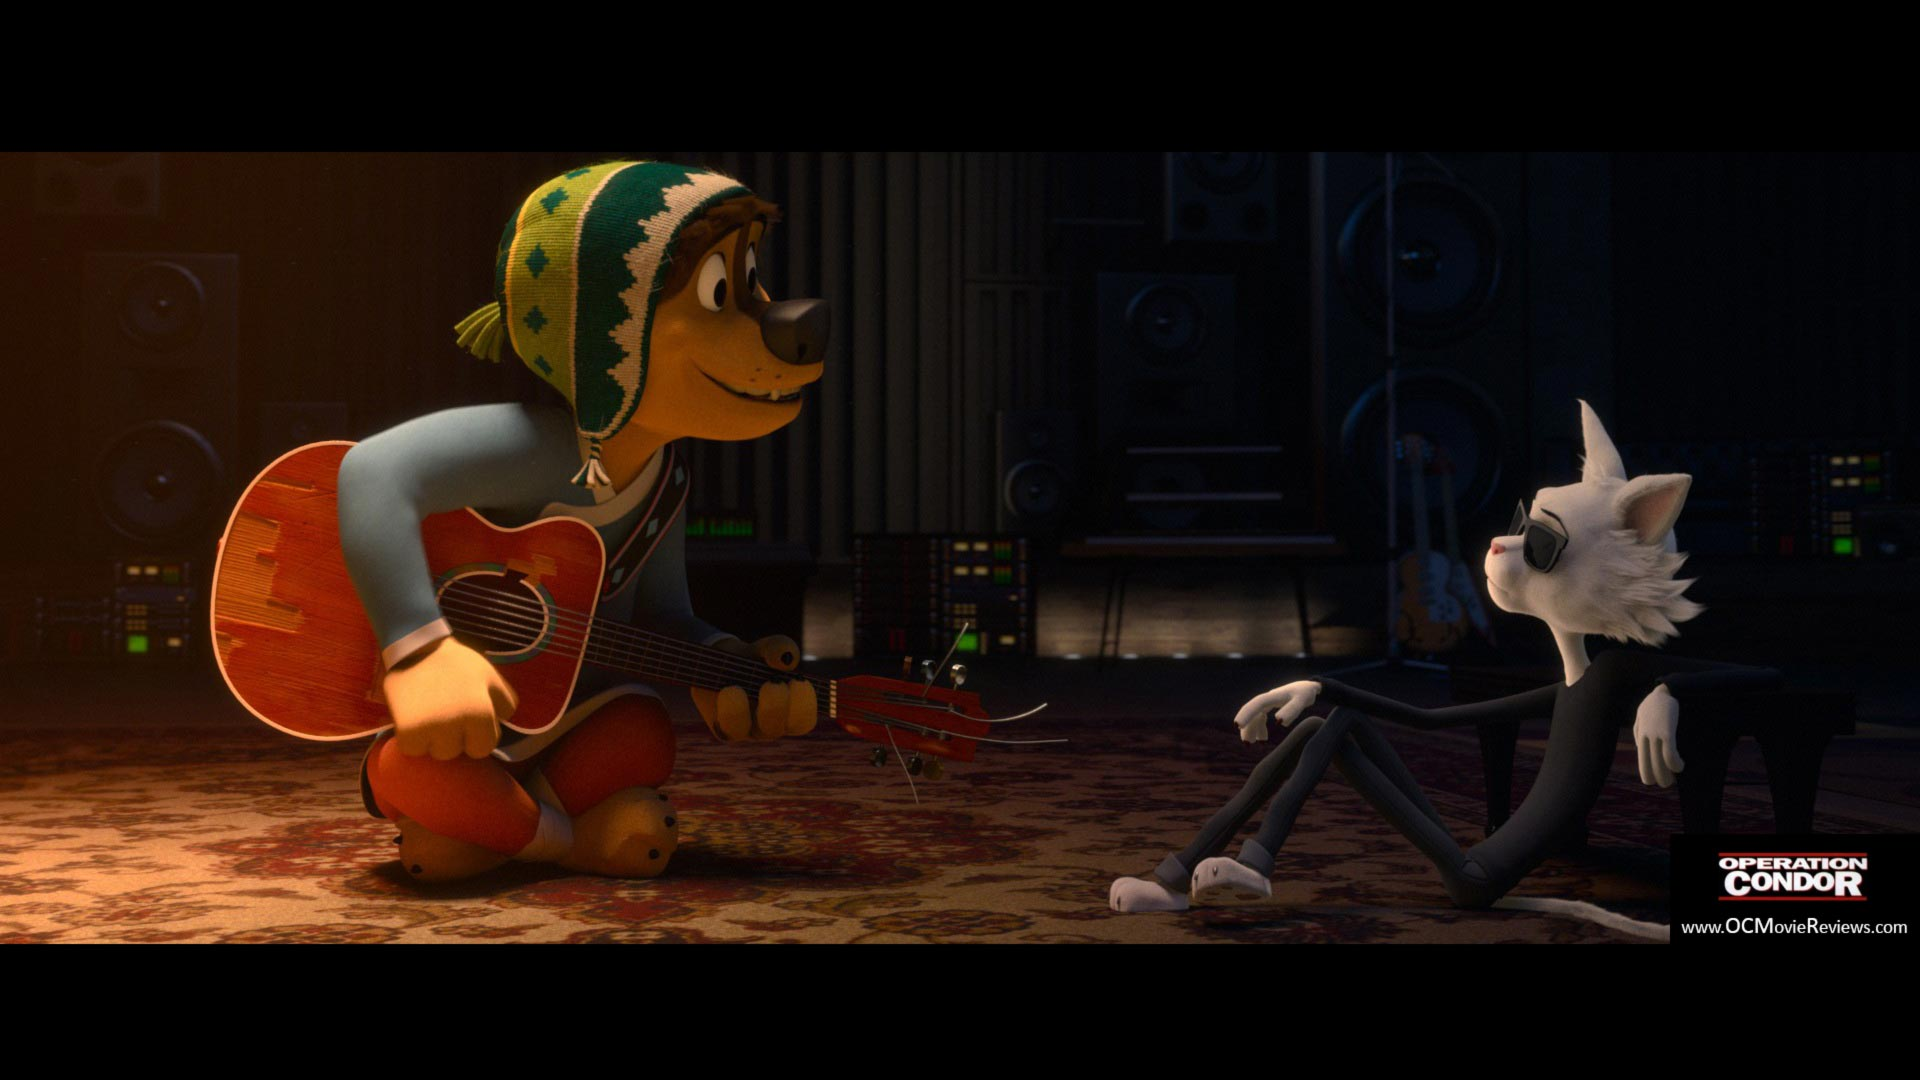 Rock Dog DVD Review – China Gets In On The Animation Game - OC Movie Reviews - Movie Reviews, Movie News, Documentary Reviews, Short Films, Short Film Reviews, Trailers, Movie Trailers, Interviews, film reviews, film news, hollywood, indie films, documentaries